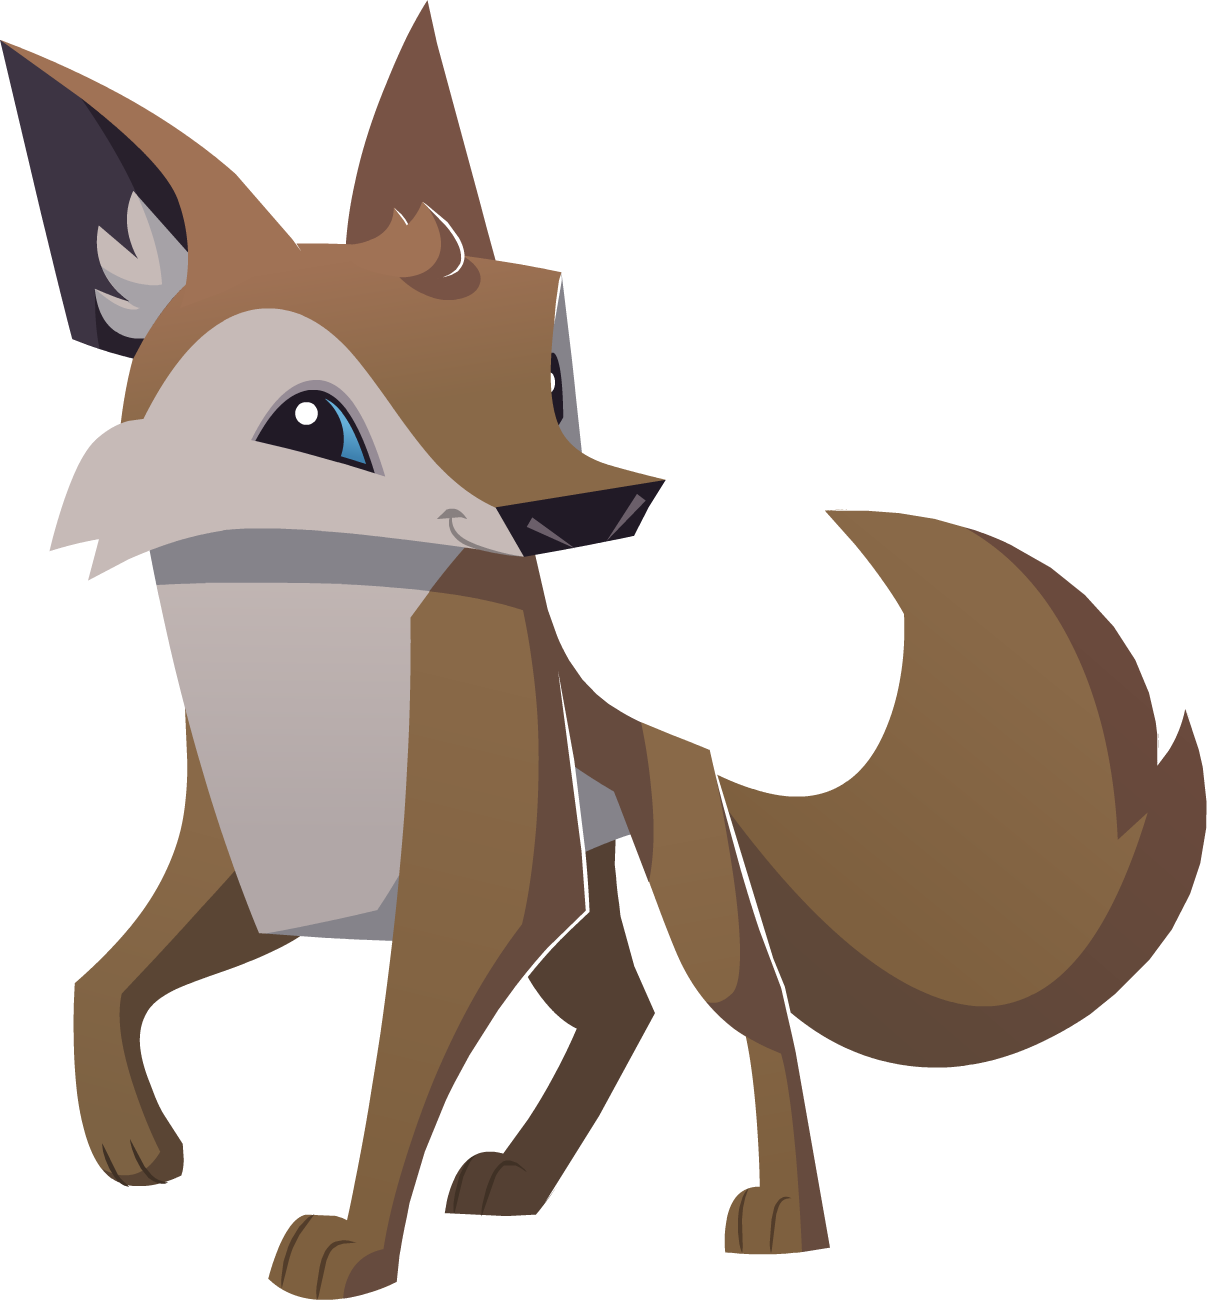 Image of: Otter Coyote Transparentpng Community Central Wikia Image Coyote Transparentpng Community Central Fandom Powered